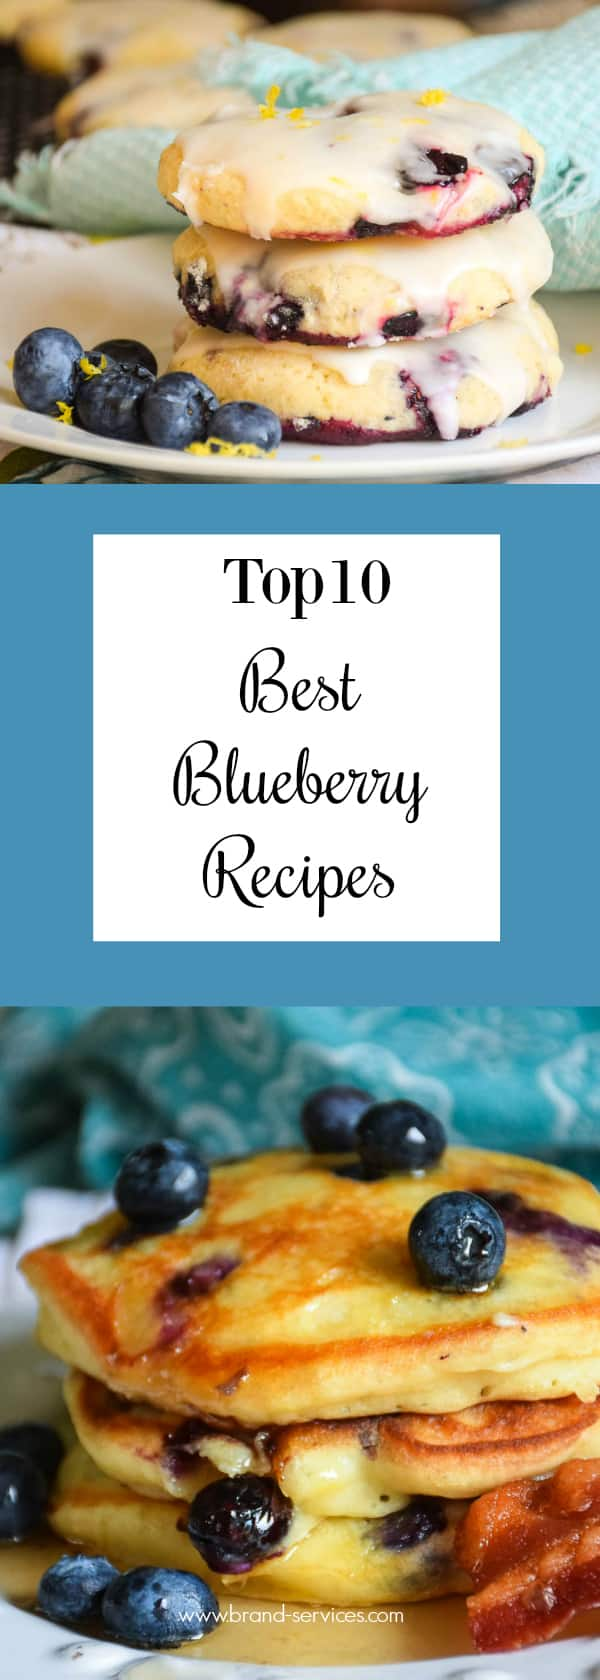 Top 10 Best Blueberry Recipes